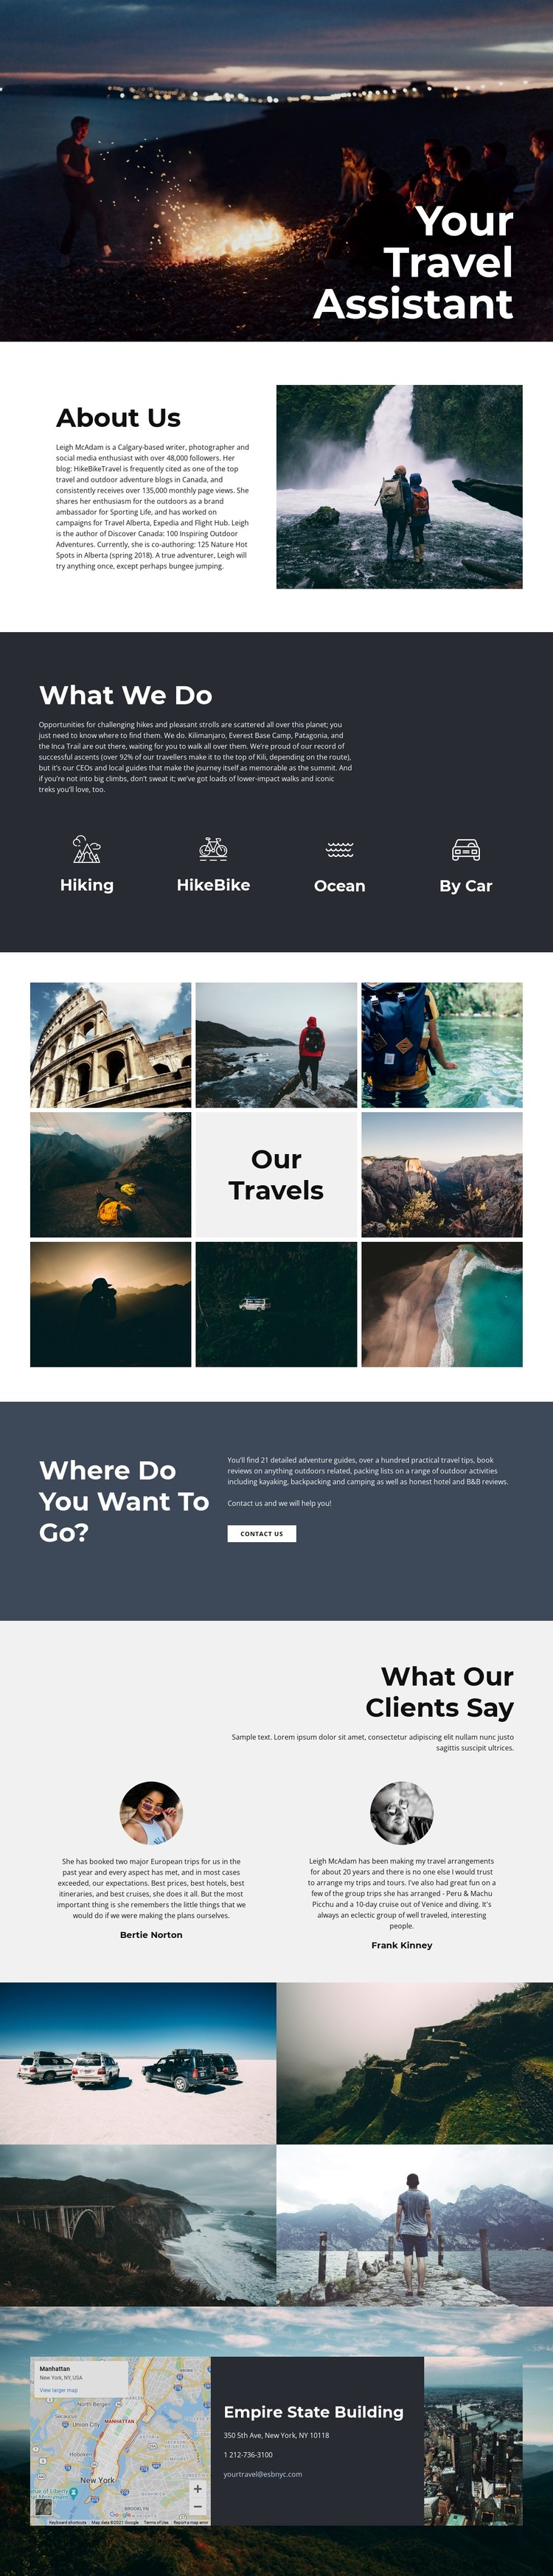 Travel Assistant Static Site Generator